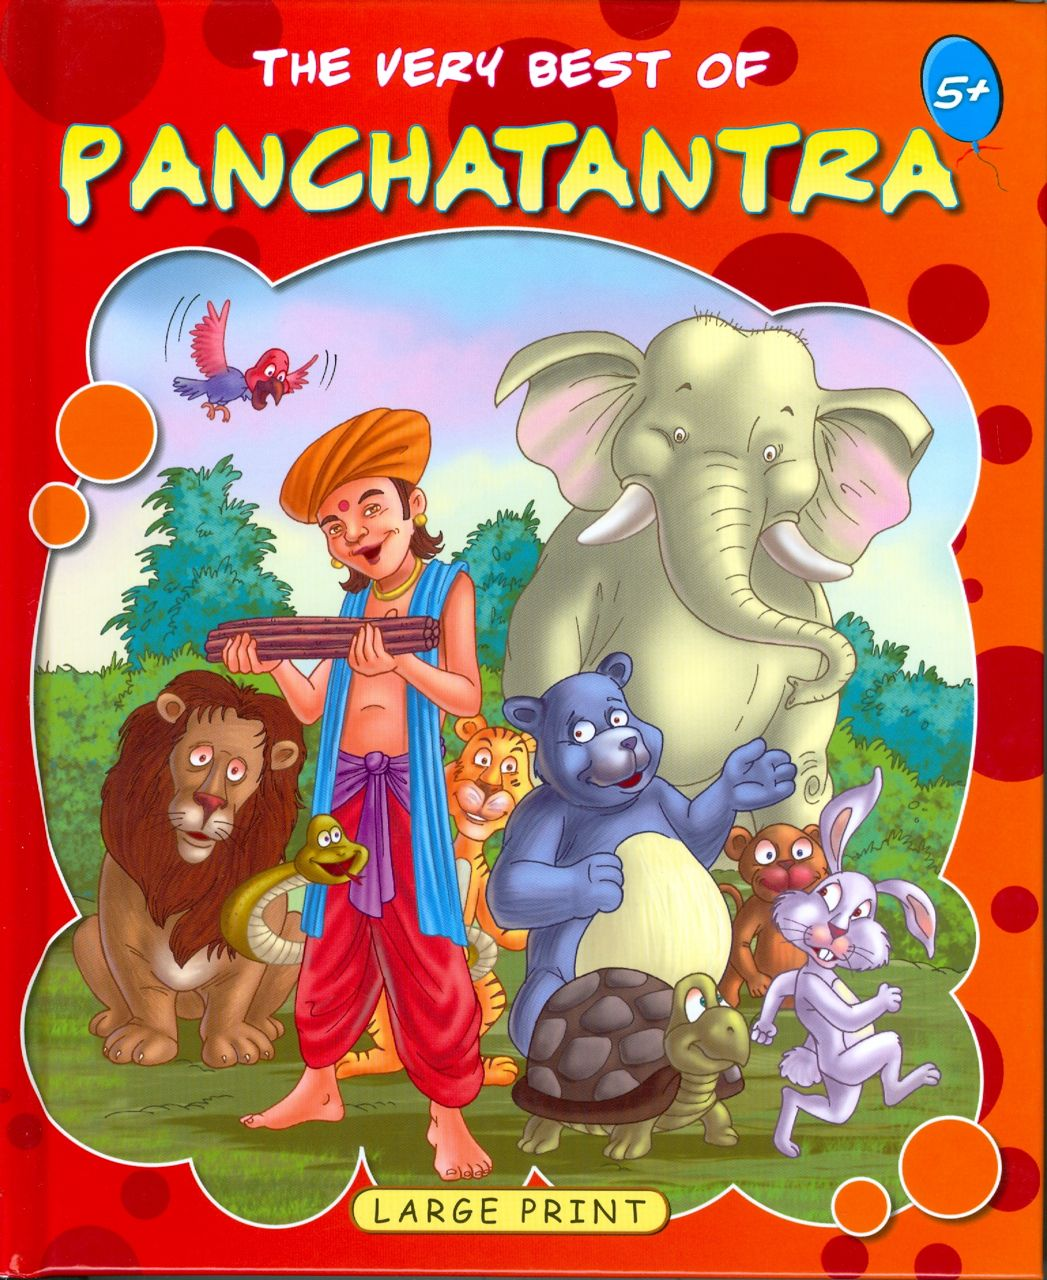 panchtantra In india, the panchatantra is the mother of all fables, compiled from orally available ancient fables by vishnu sharma, presumably in the third century bc regarded as the most widely translated non-religious text in history, the panchatantra was translated into middle persian/pahlavi in the sixth century and into arabic in the eighth century.